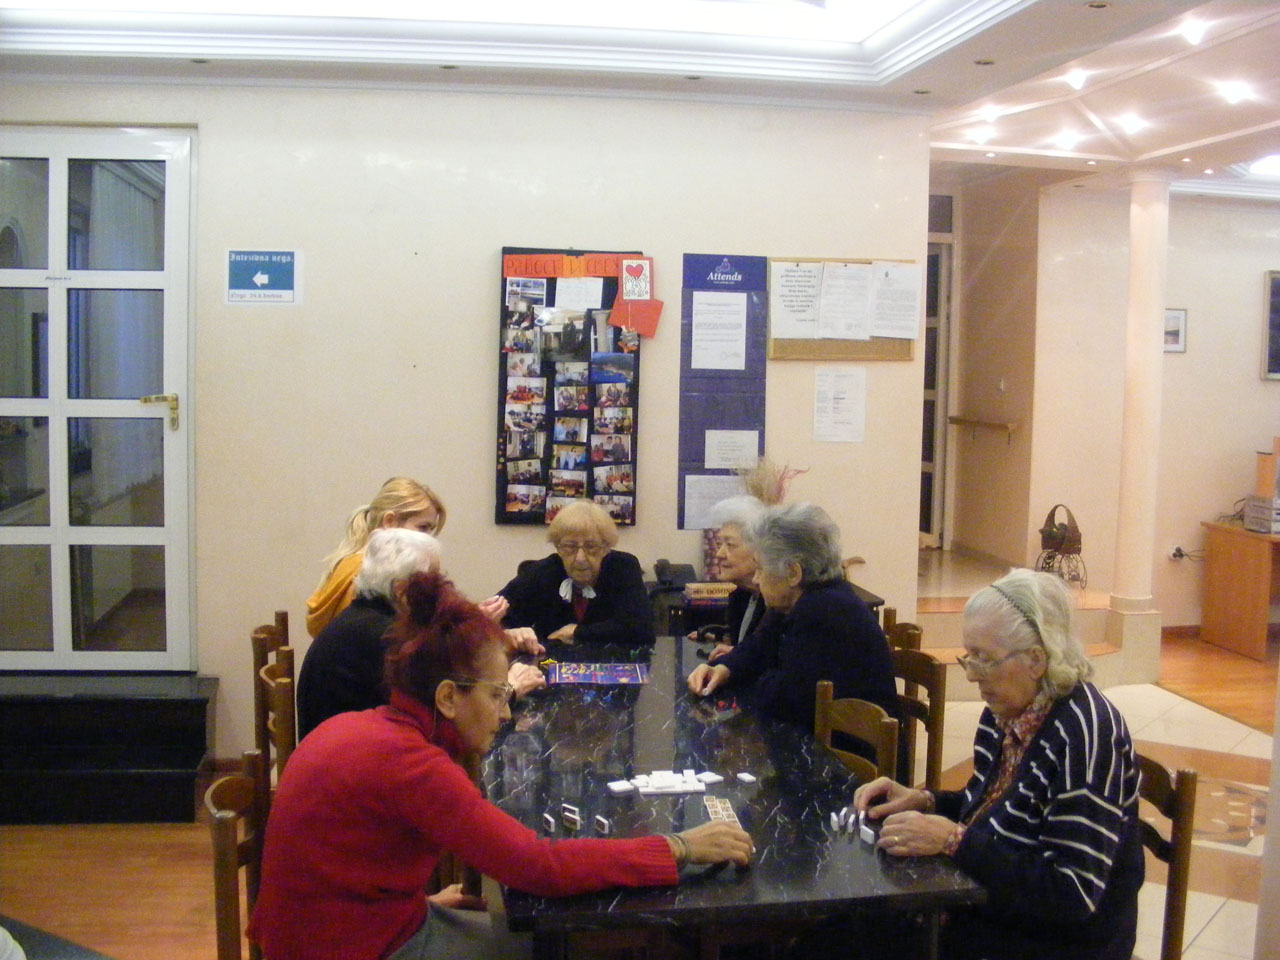 ADULT CARE HOME MOJA OAZA Homes and care for the elderly Beograd